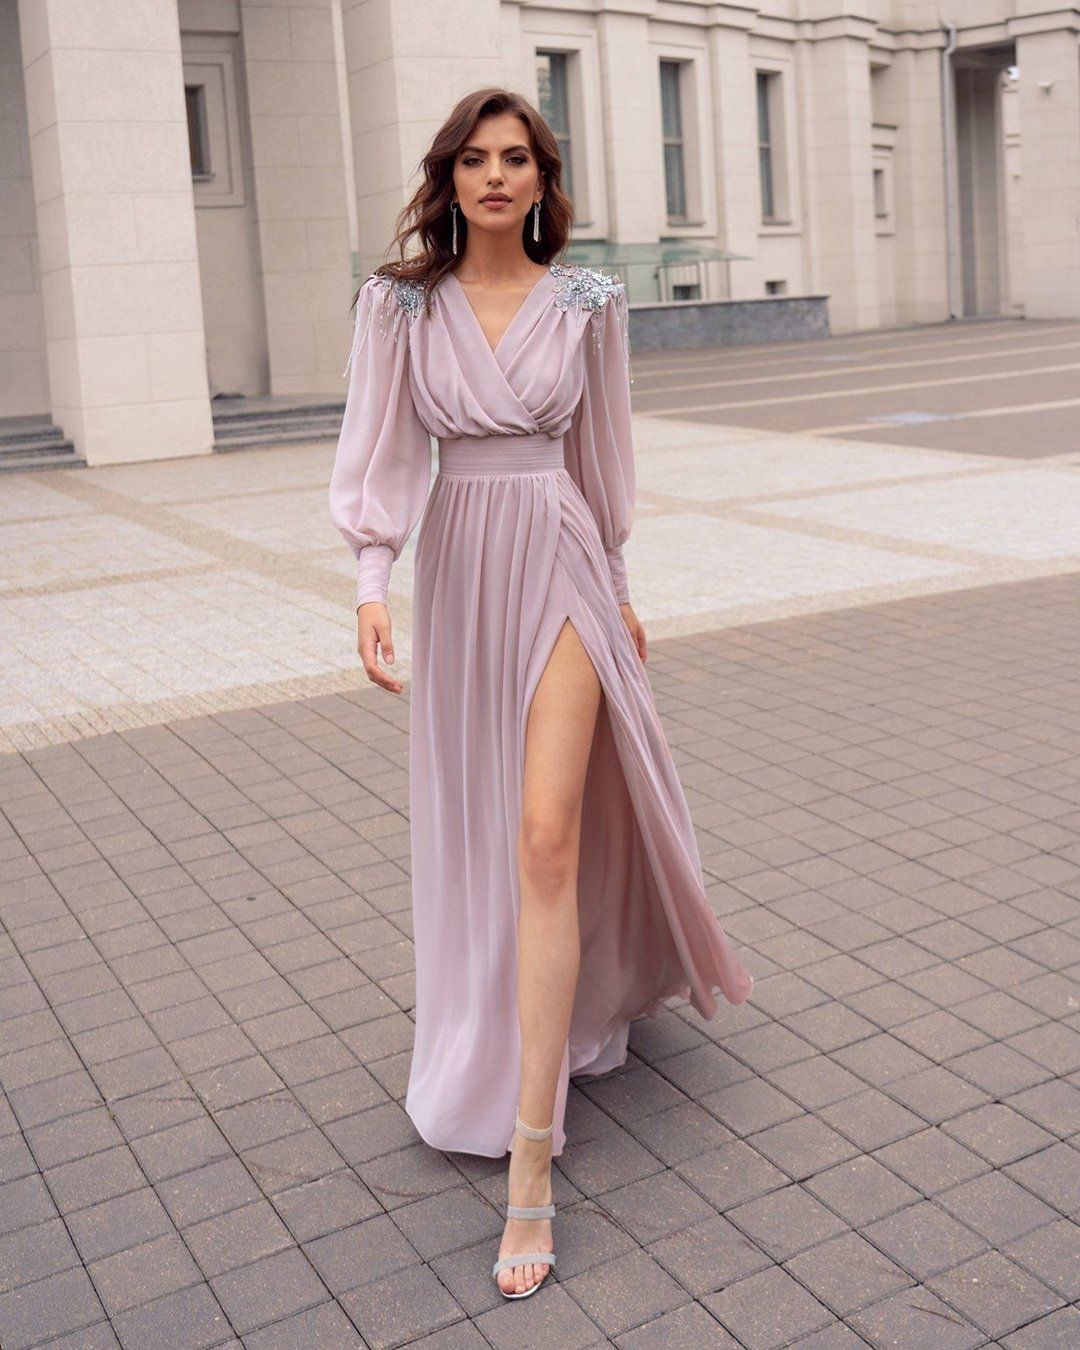 30 Wedding Guest Dresses For Every Seasons Style Guest Dresses Elegant Dresses A Line Prom Dresses [ 1350 x 1080 Pixel ]